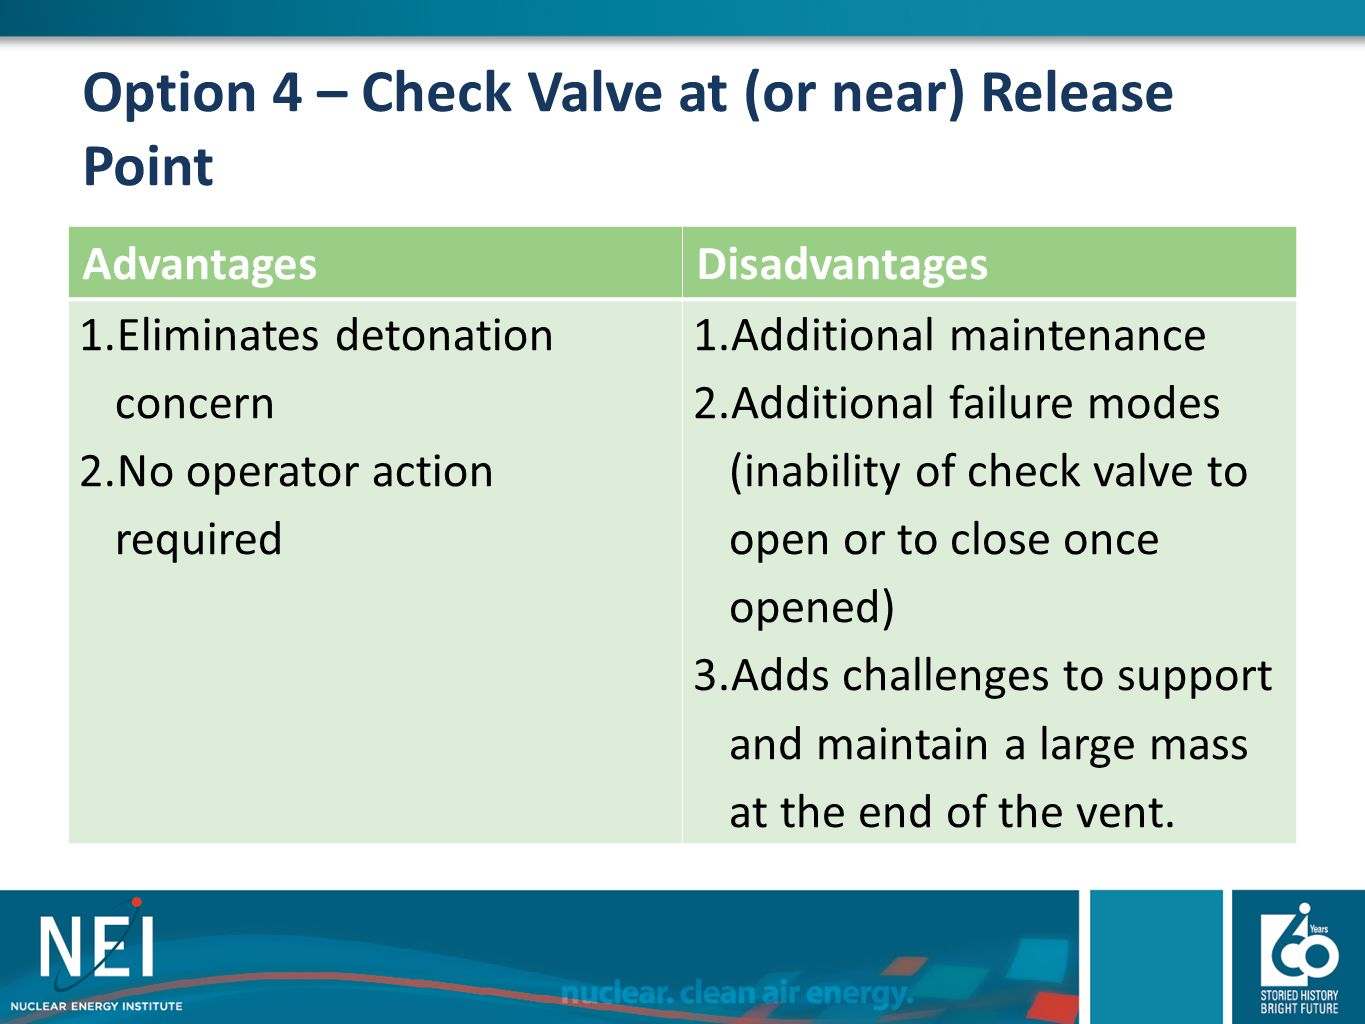 Option 4 – Check Valve at (or near) Release Point